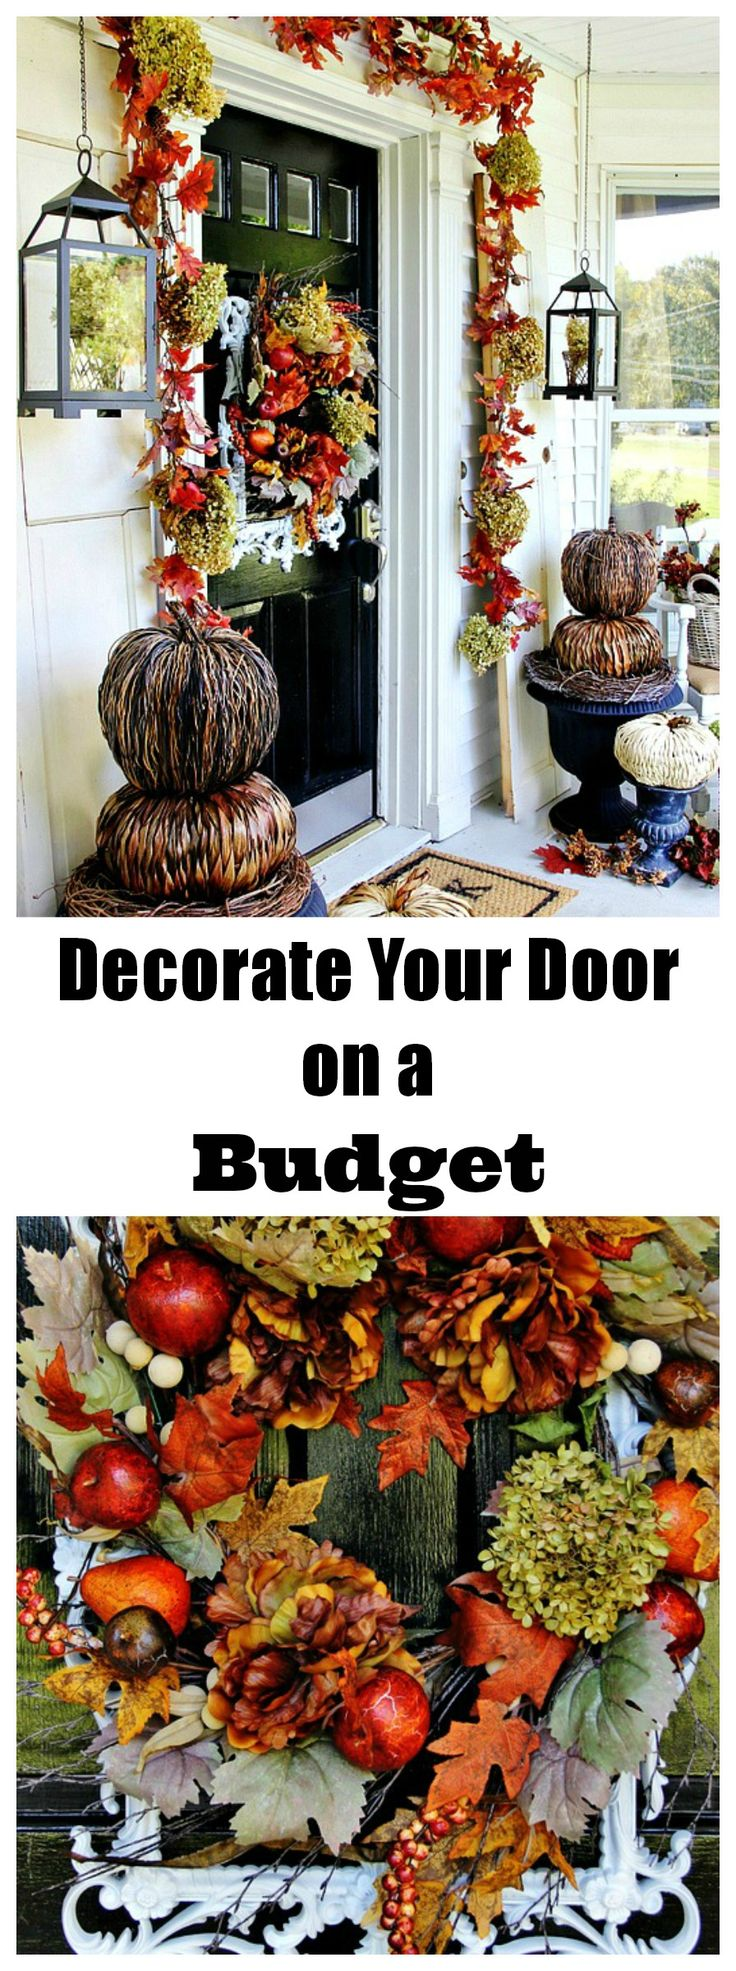 Looking for easy budget ideas for decorating the front door.  Make pumpkin topiaries and hydrangea  garland.  thistlewoodfarms.com